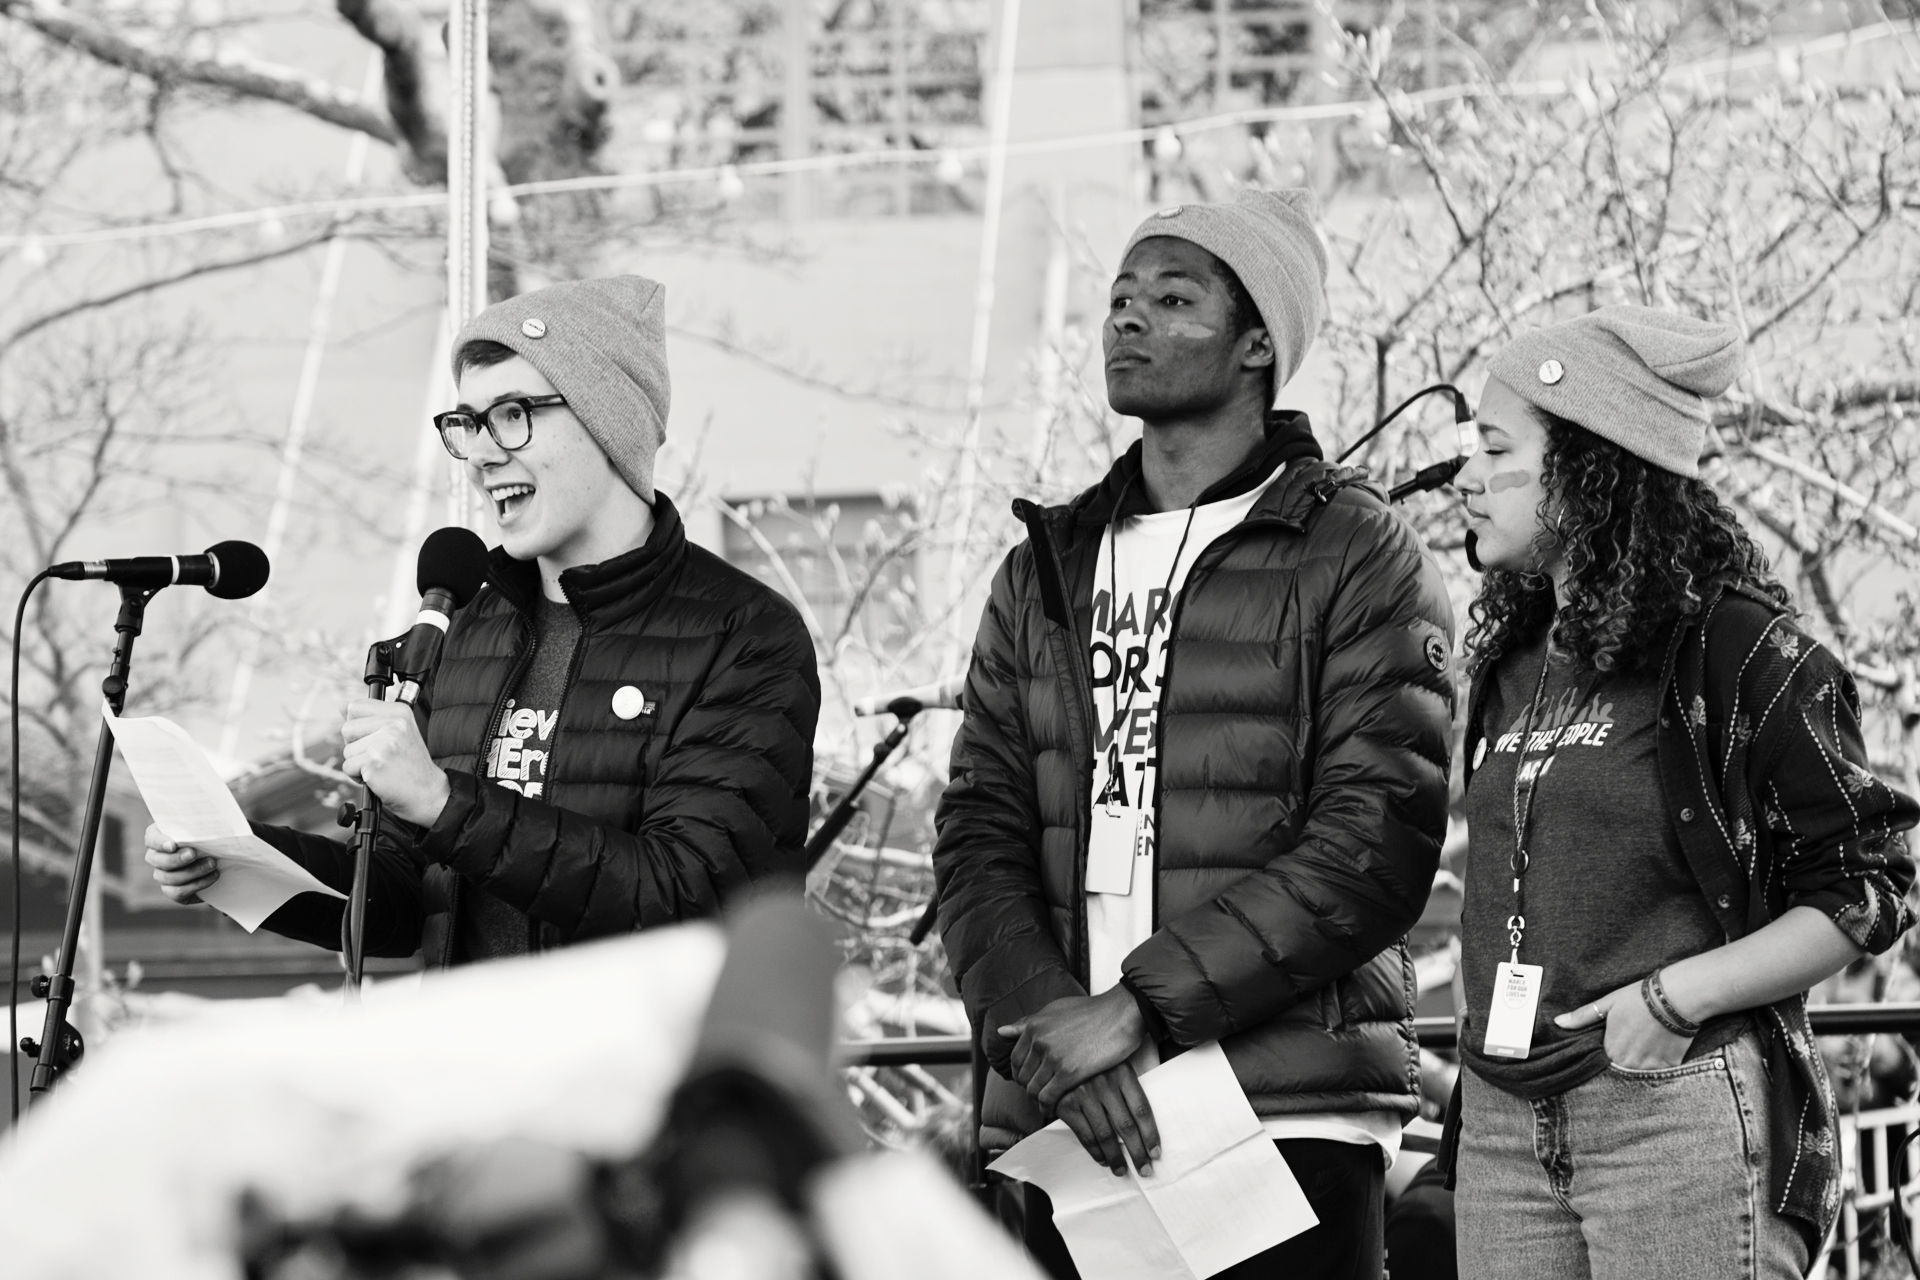 March For Our Lives 176.jpg